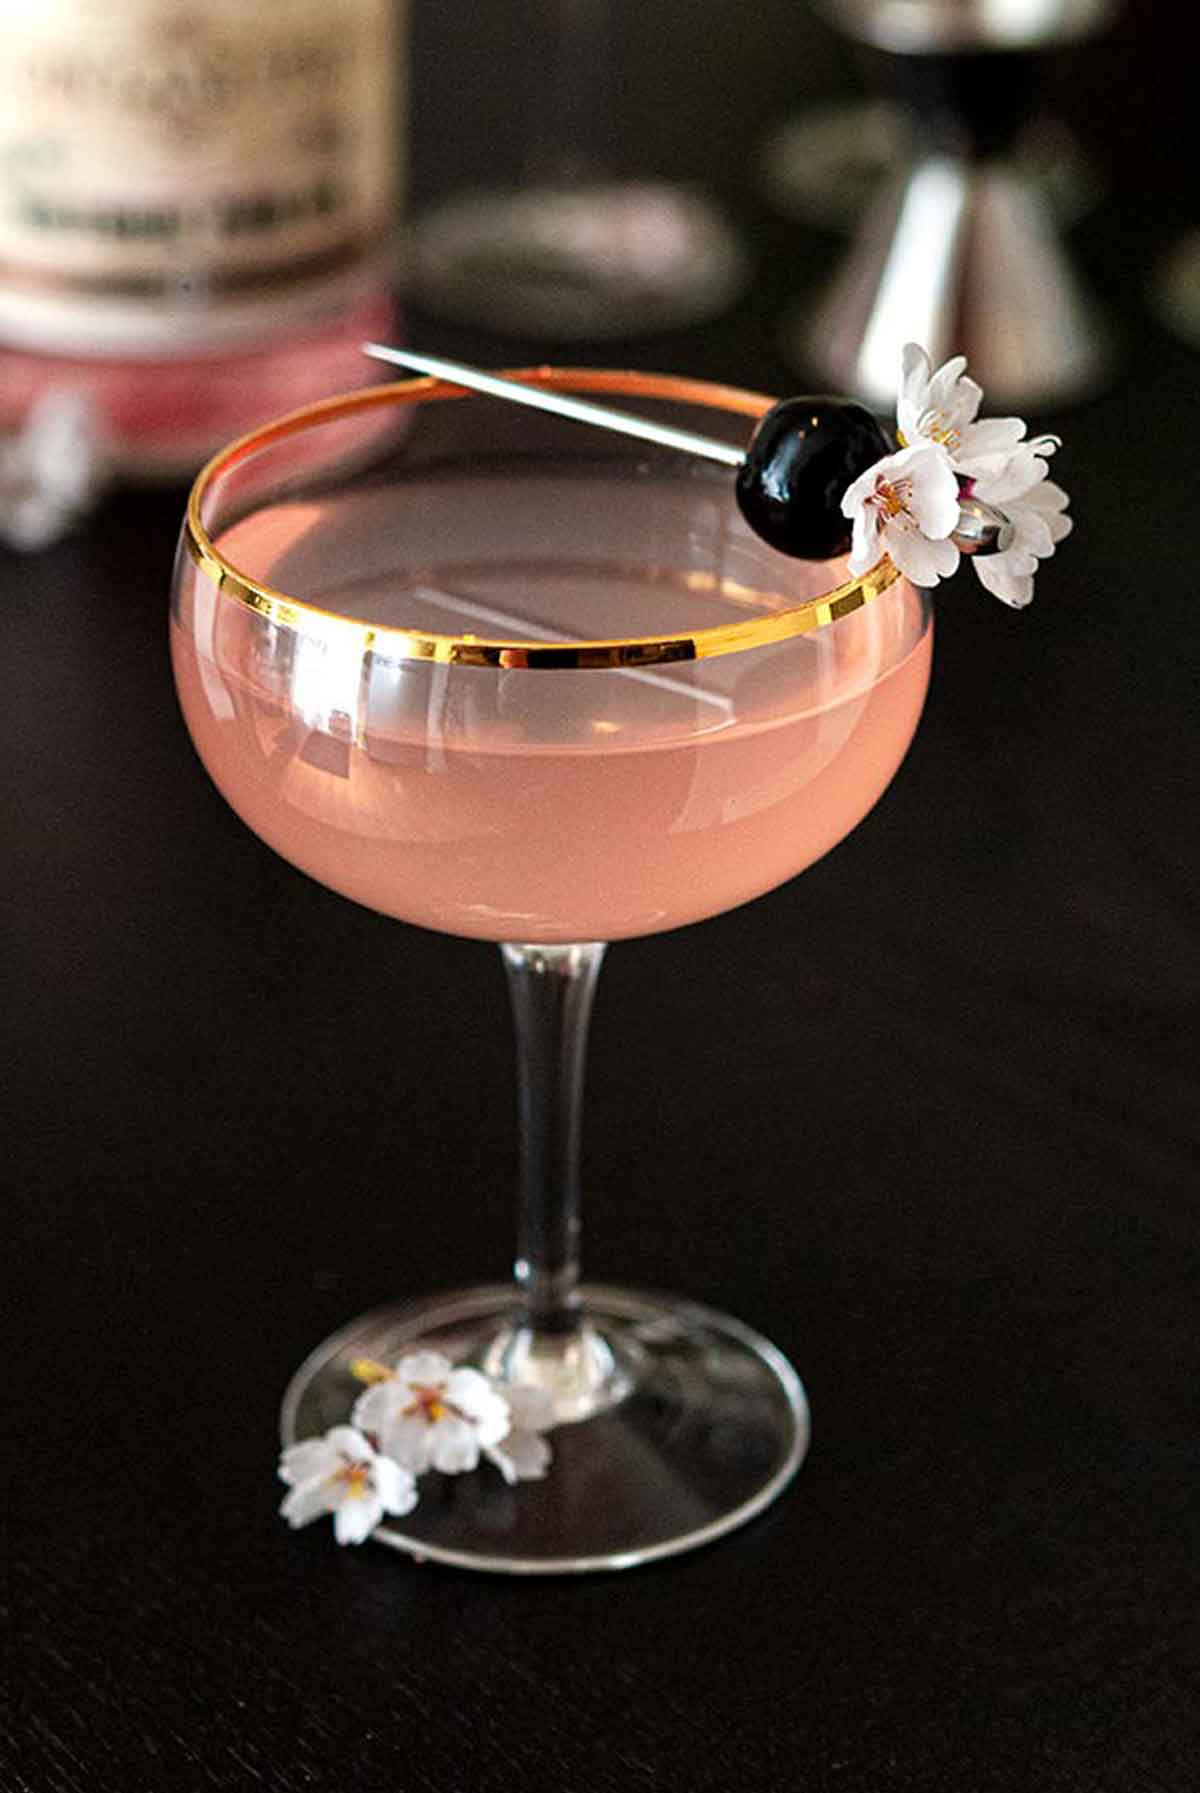 A pink cocktail, garnished with a cherry and small cherry blossoms on a black table.